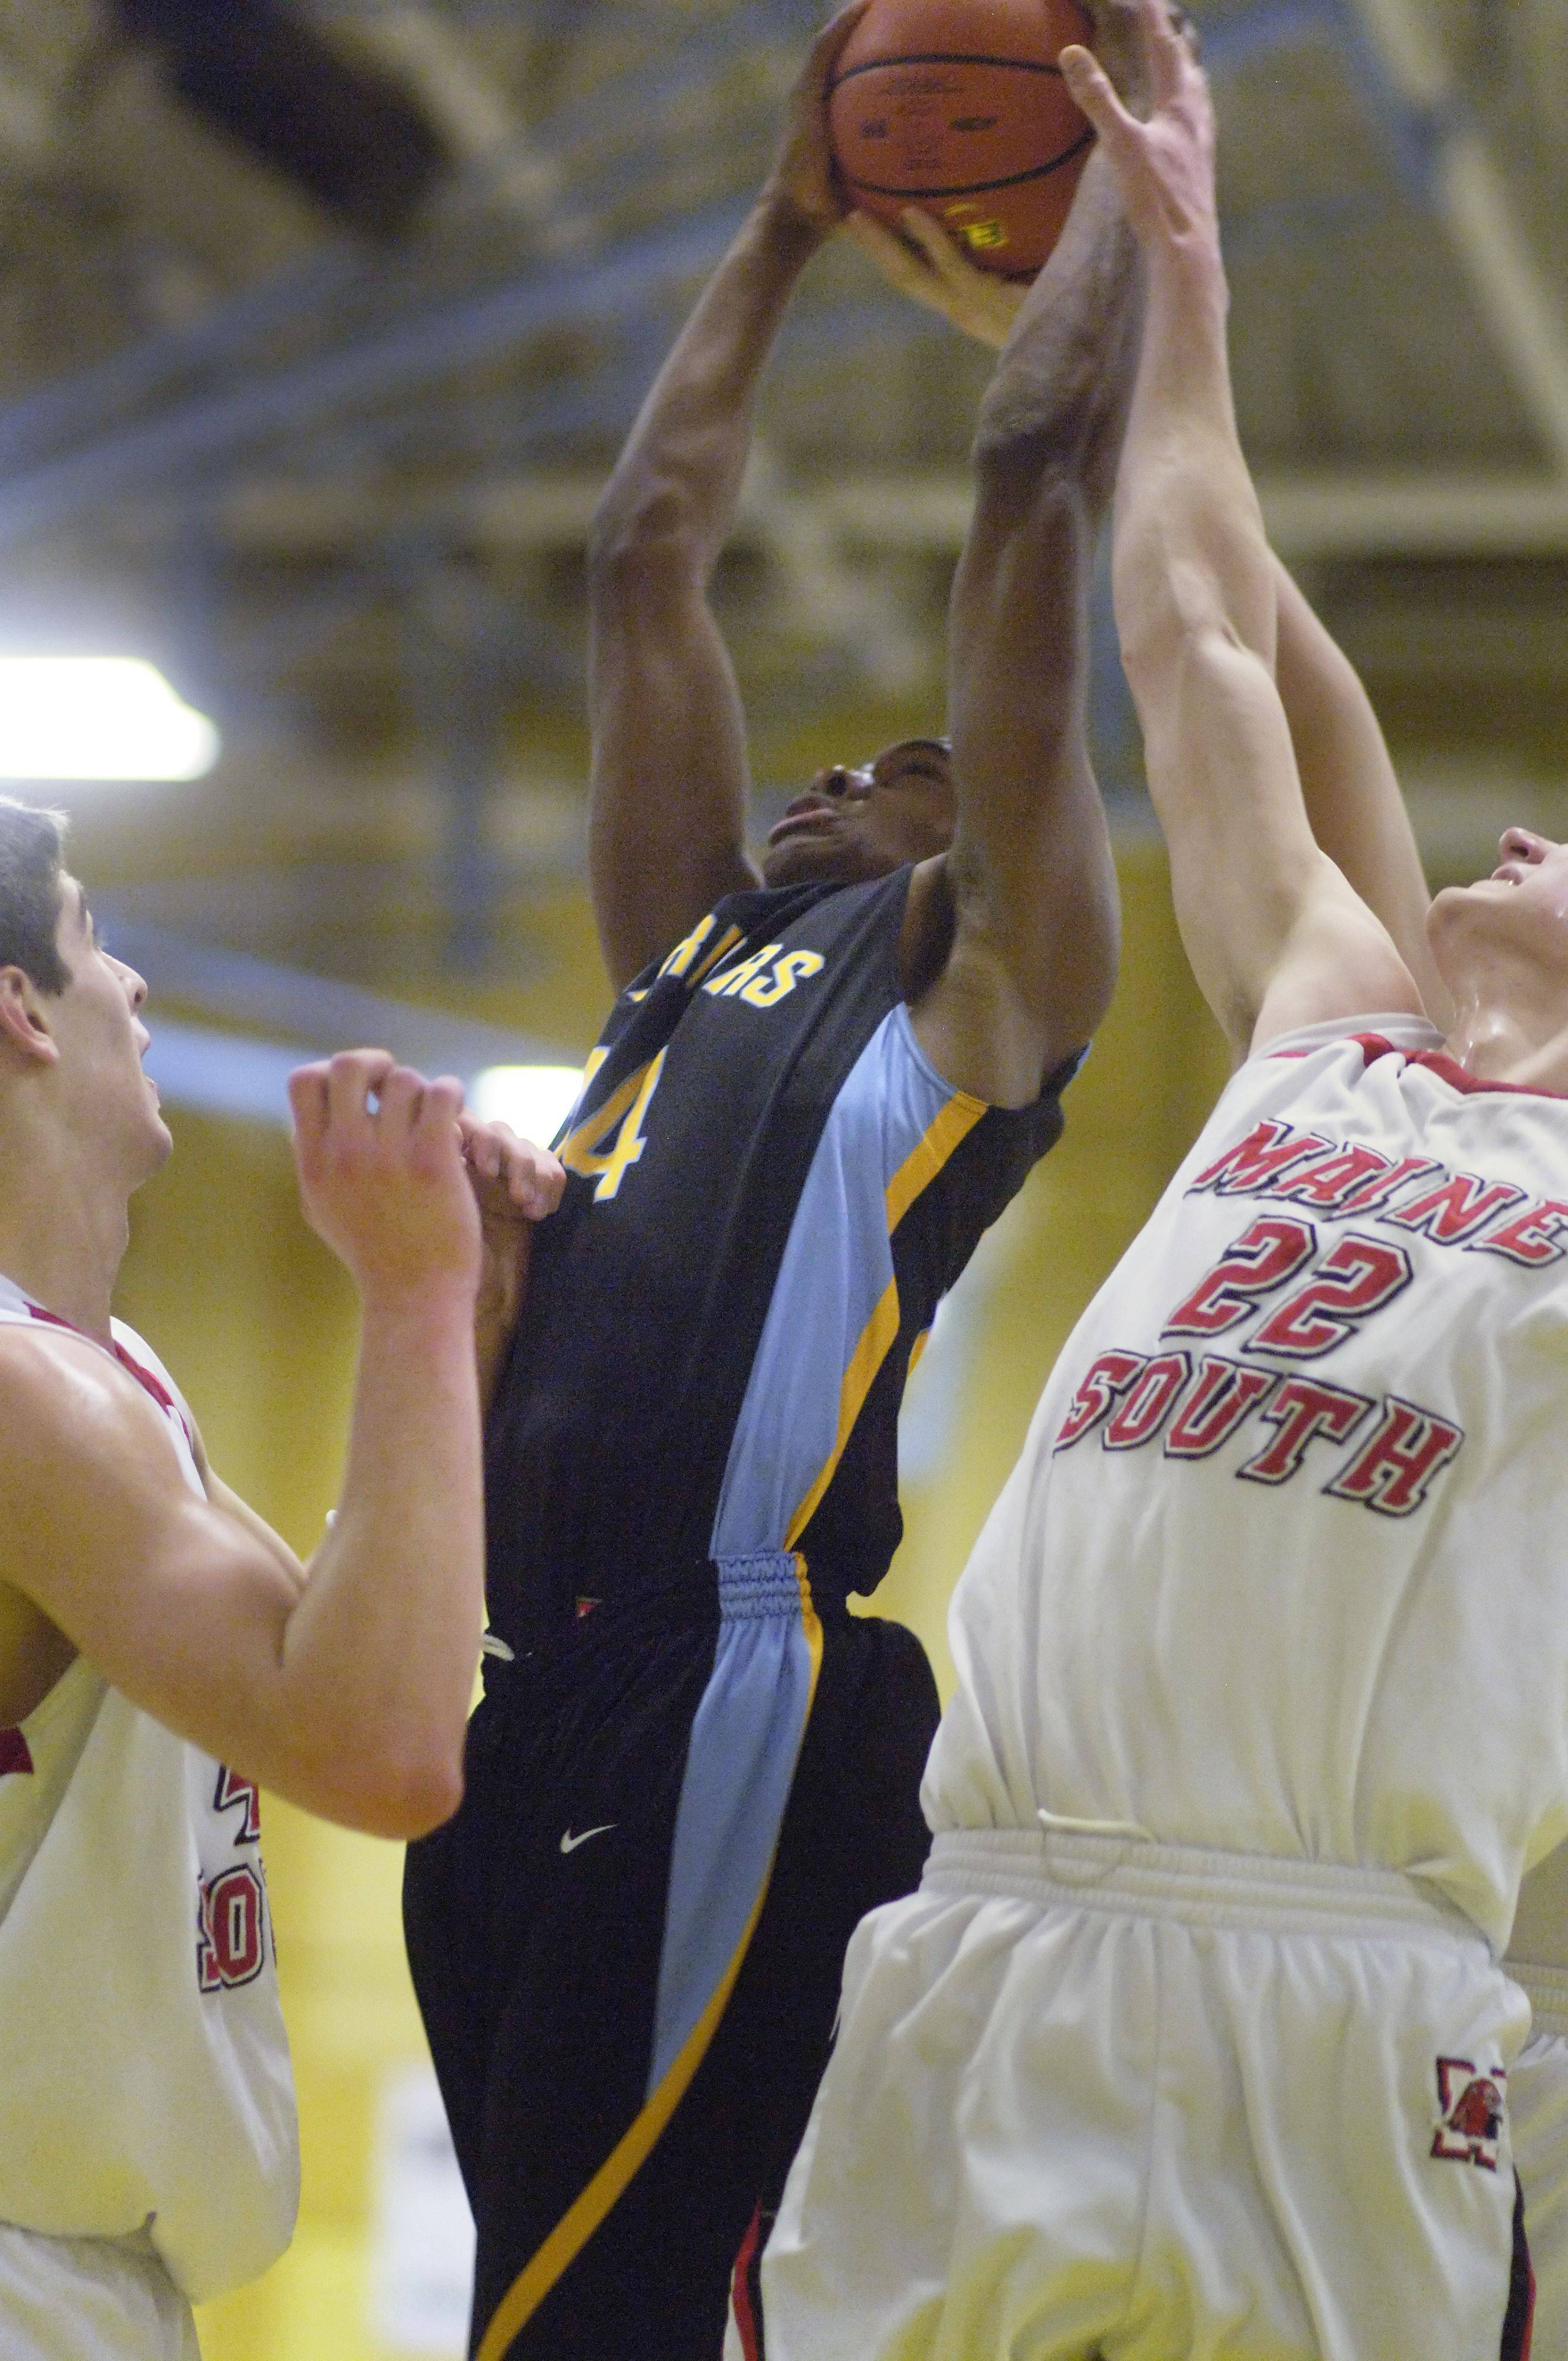 Images from the Maine West vs Maine South boys regional basketball game in Des Plaines on Tuesday, March 1st.